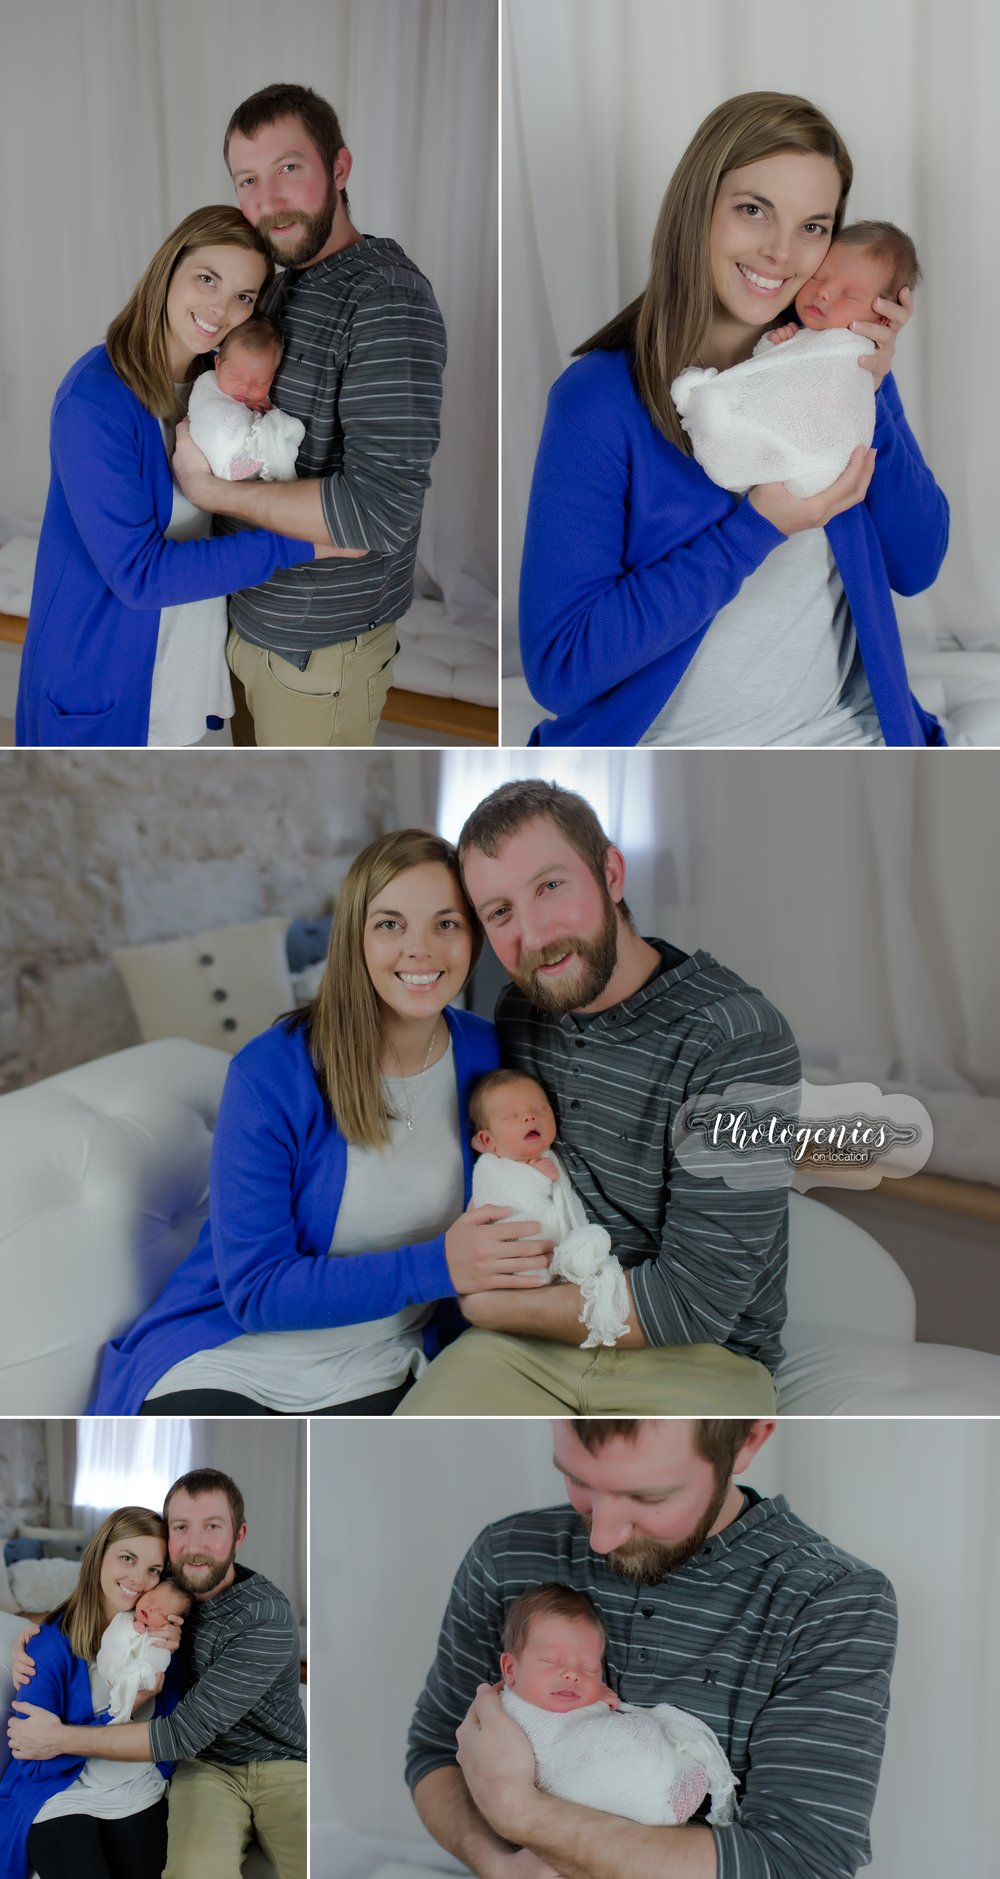 newborn_boy_photography_ideas_romper_hair_props_neutrals_simple_pictures_studio_baby_parents_family_poses.jpg